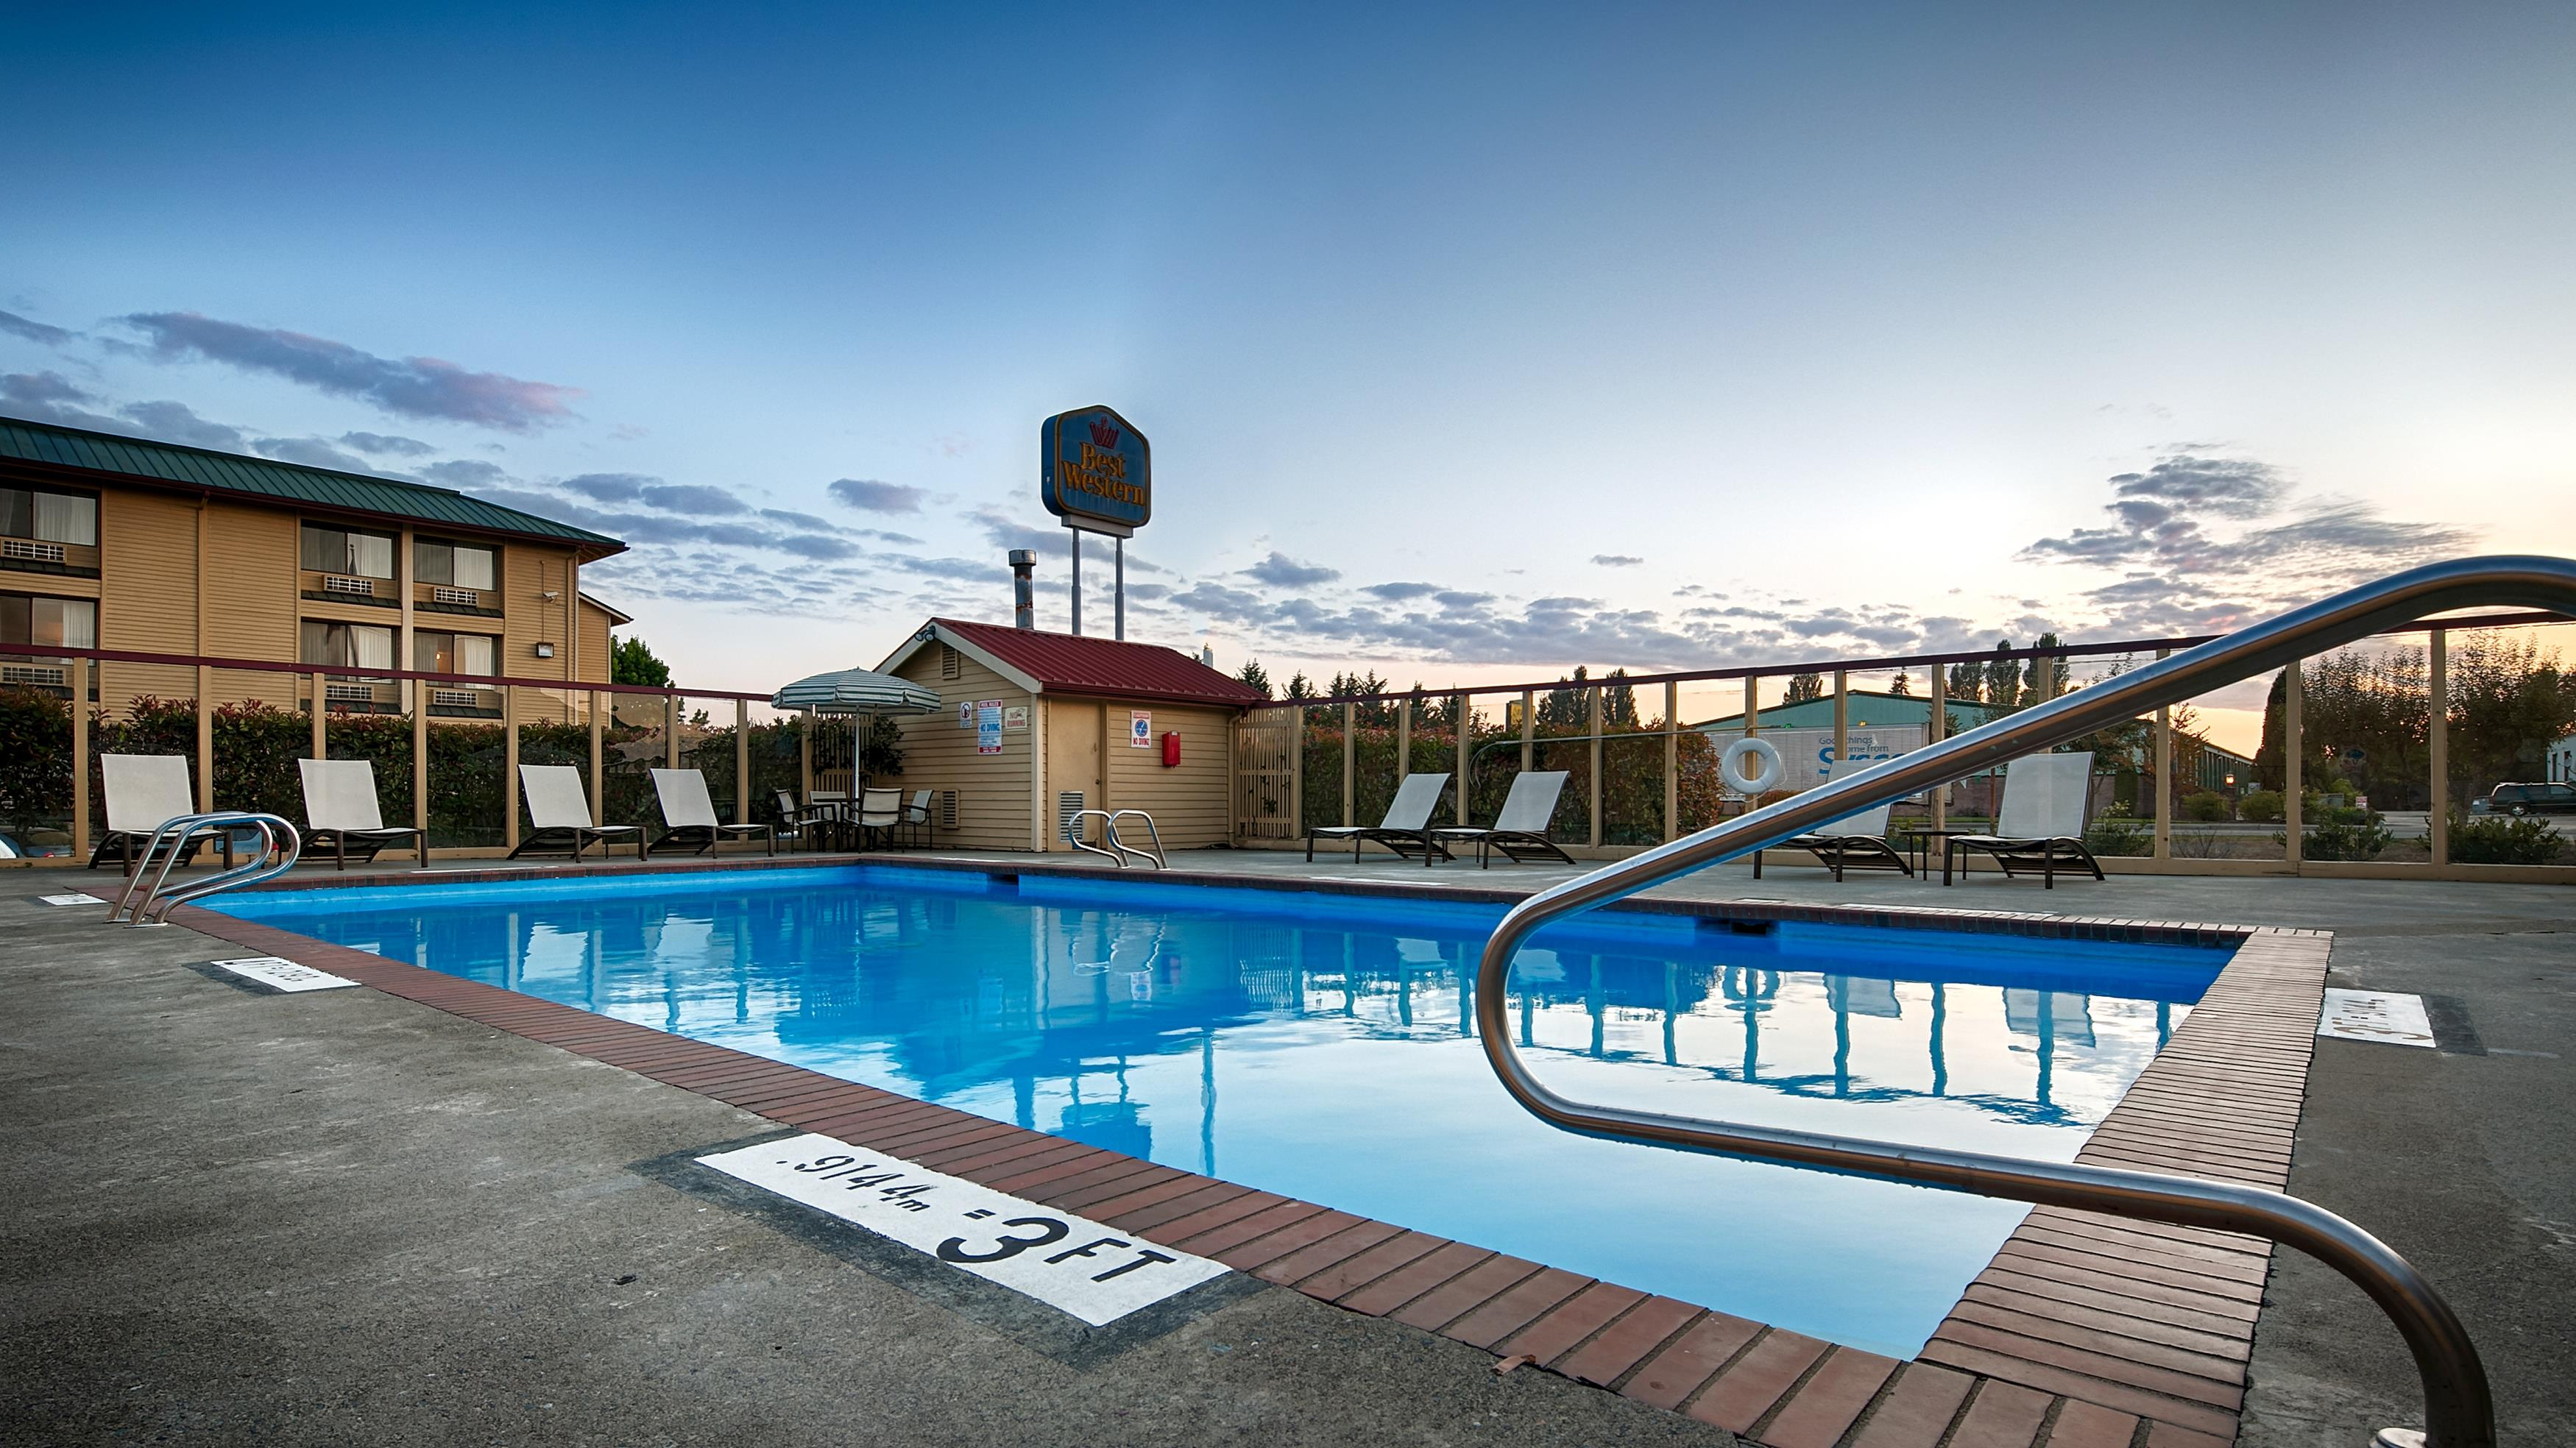 Best Western Plus Skagit Valley Inn And Convention Center, Mount Vernon WA